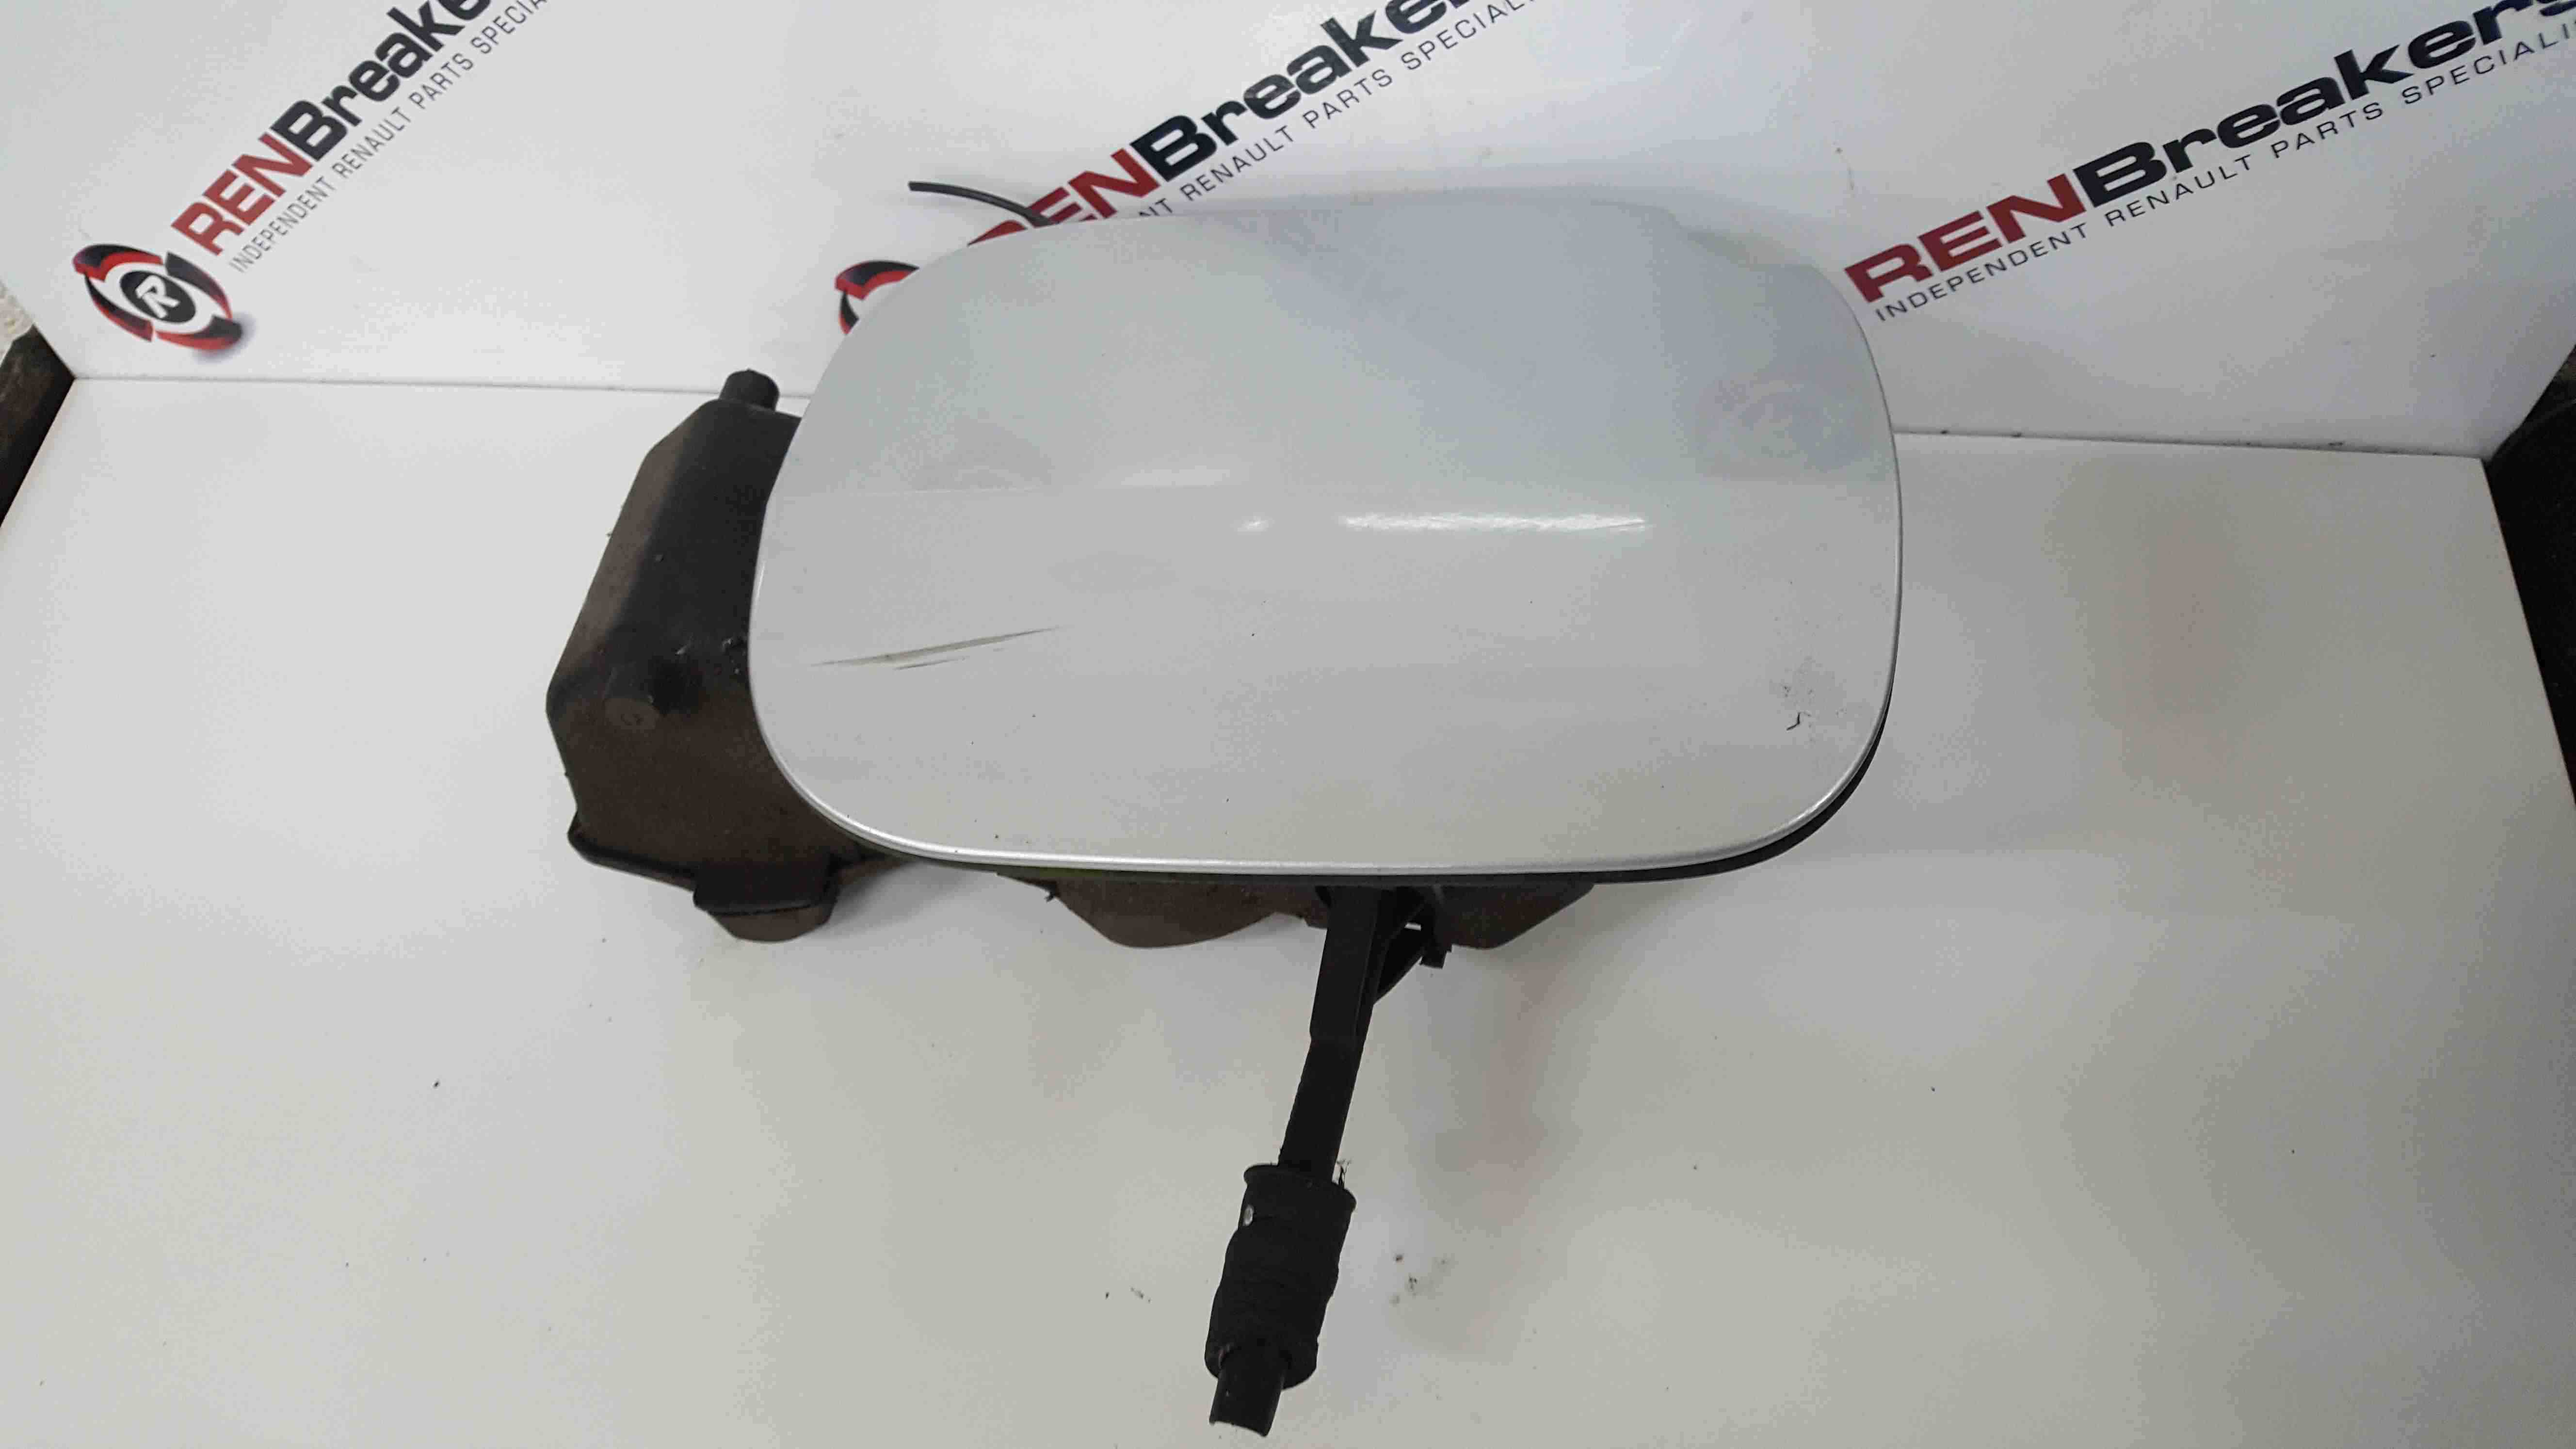 Renault Clio MK3 2005-2012 Fuel Flap Cover Silver TED69 + Hinges 8200383466